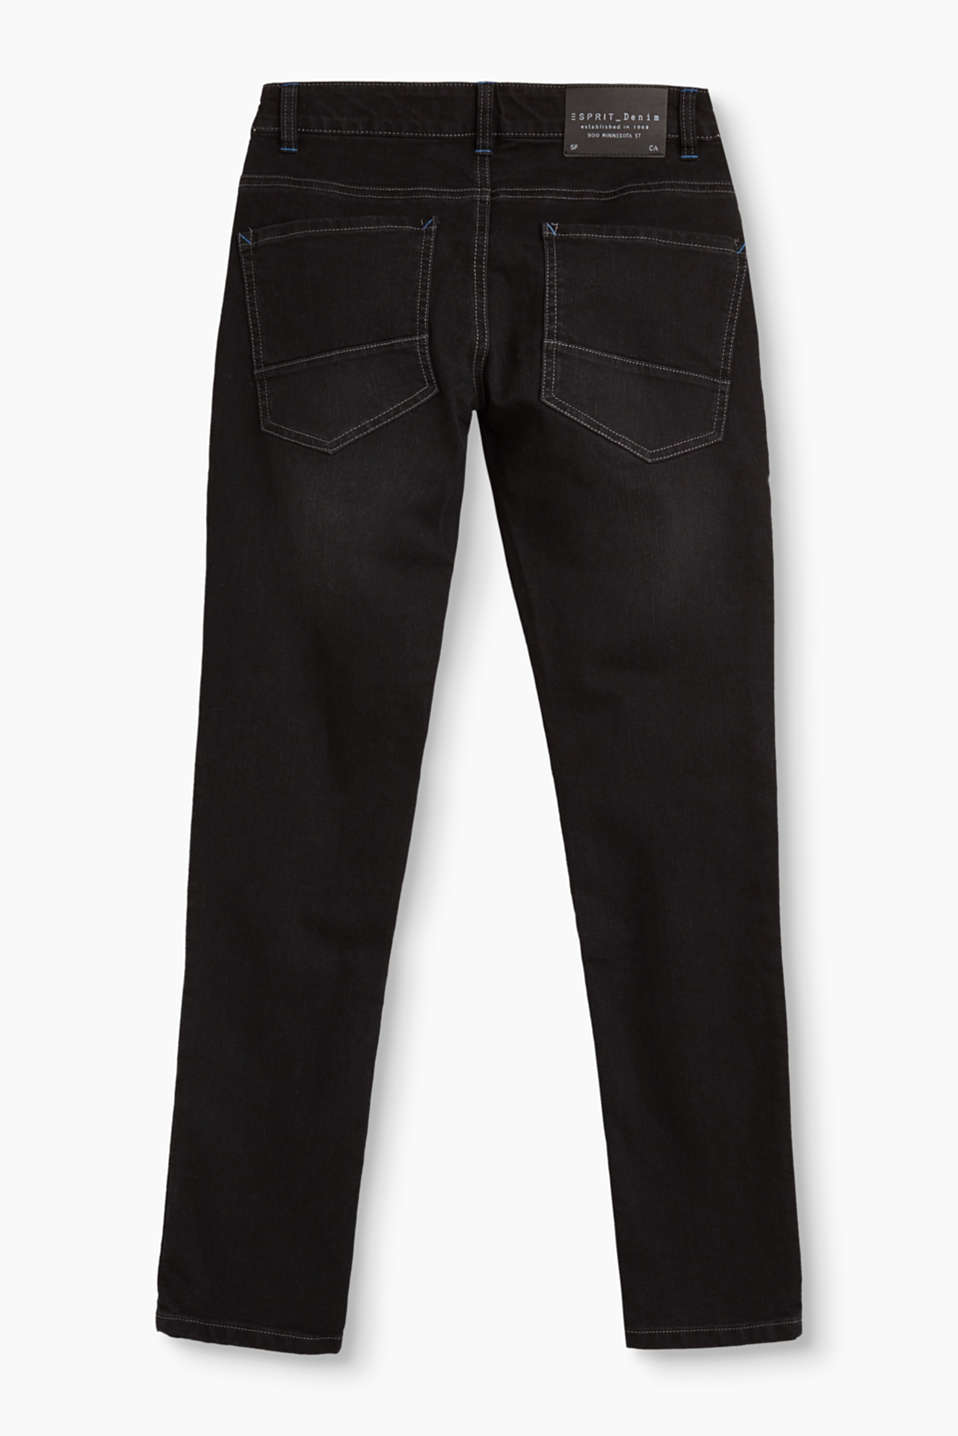 Black jeans with contrasting stitching